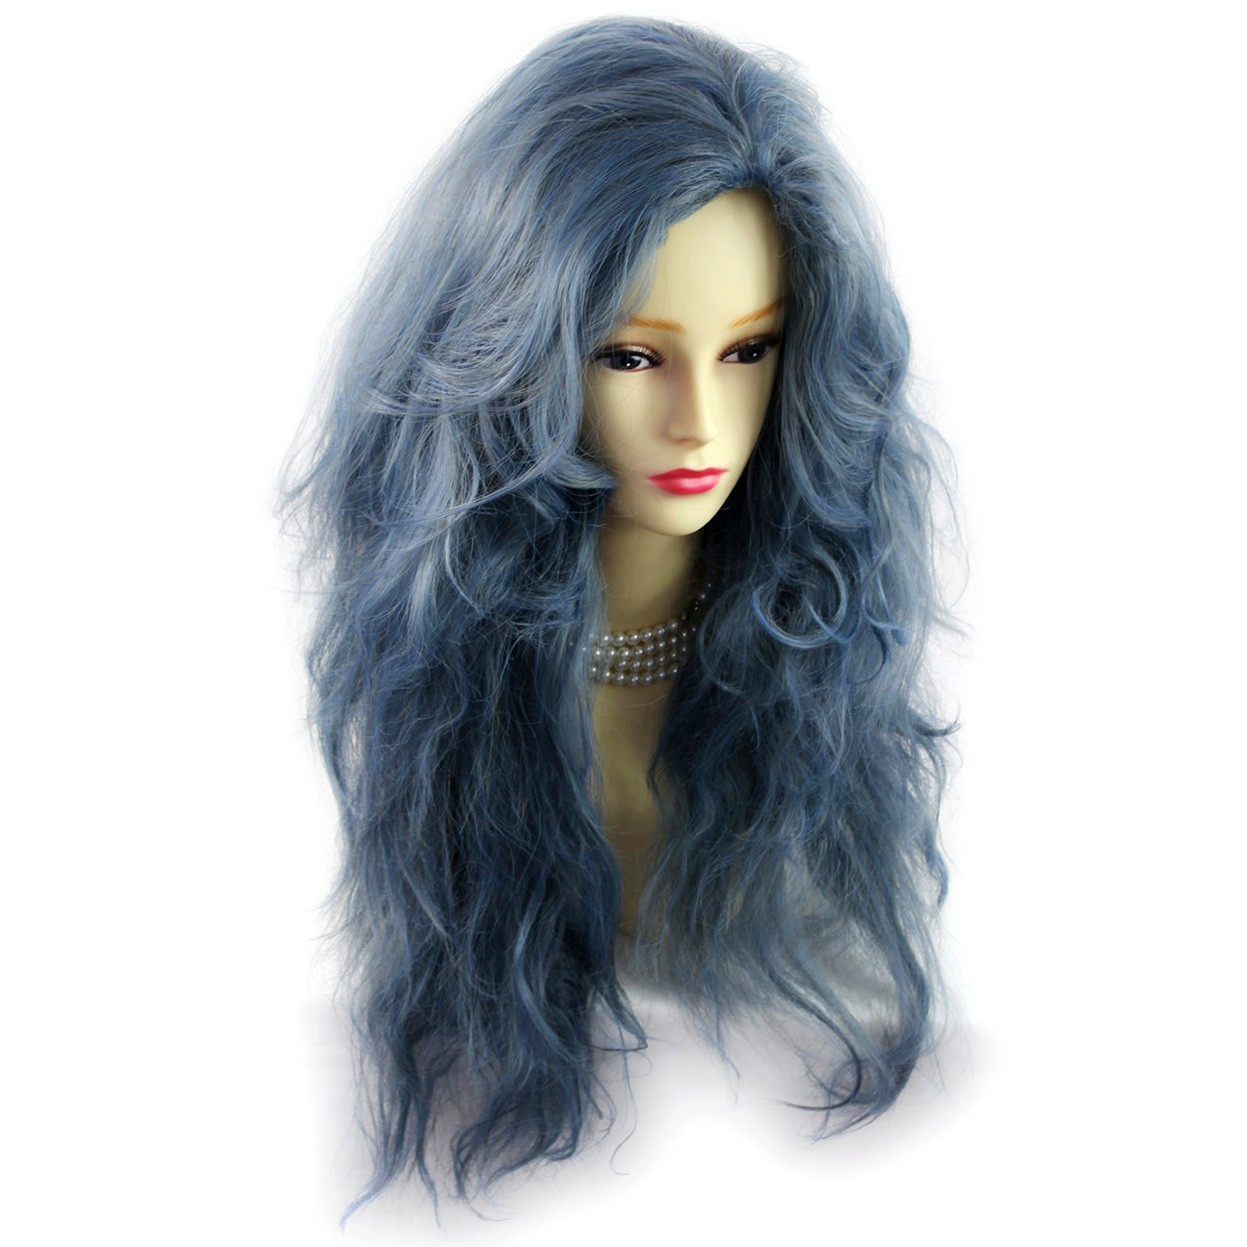 Wiwigs Romantic Sexy Wild Untamed Long Curly Wig Gray